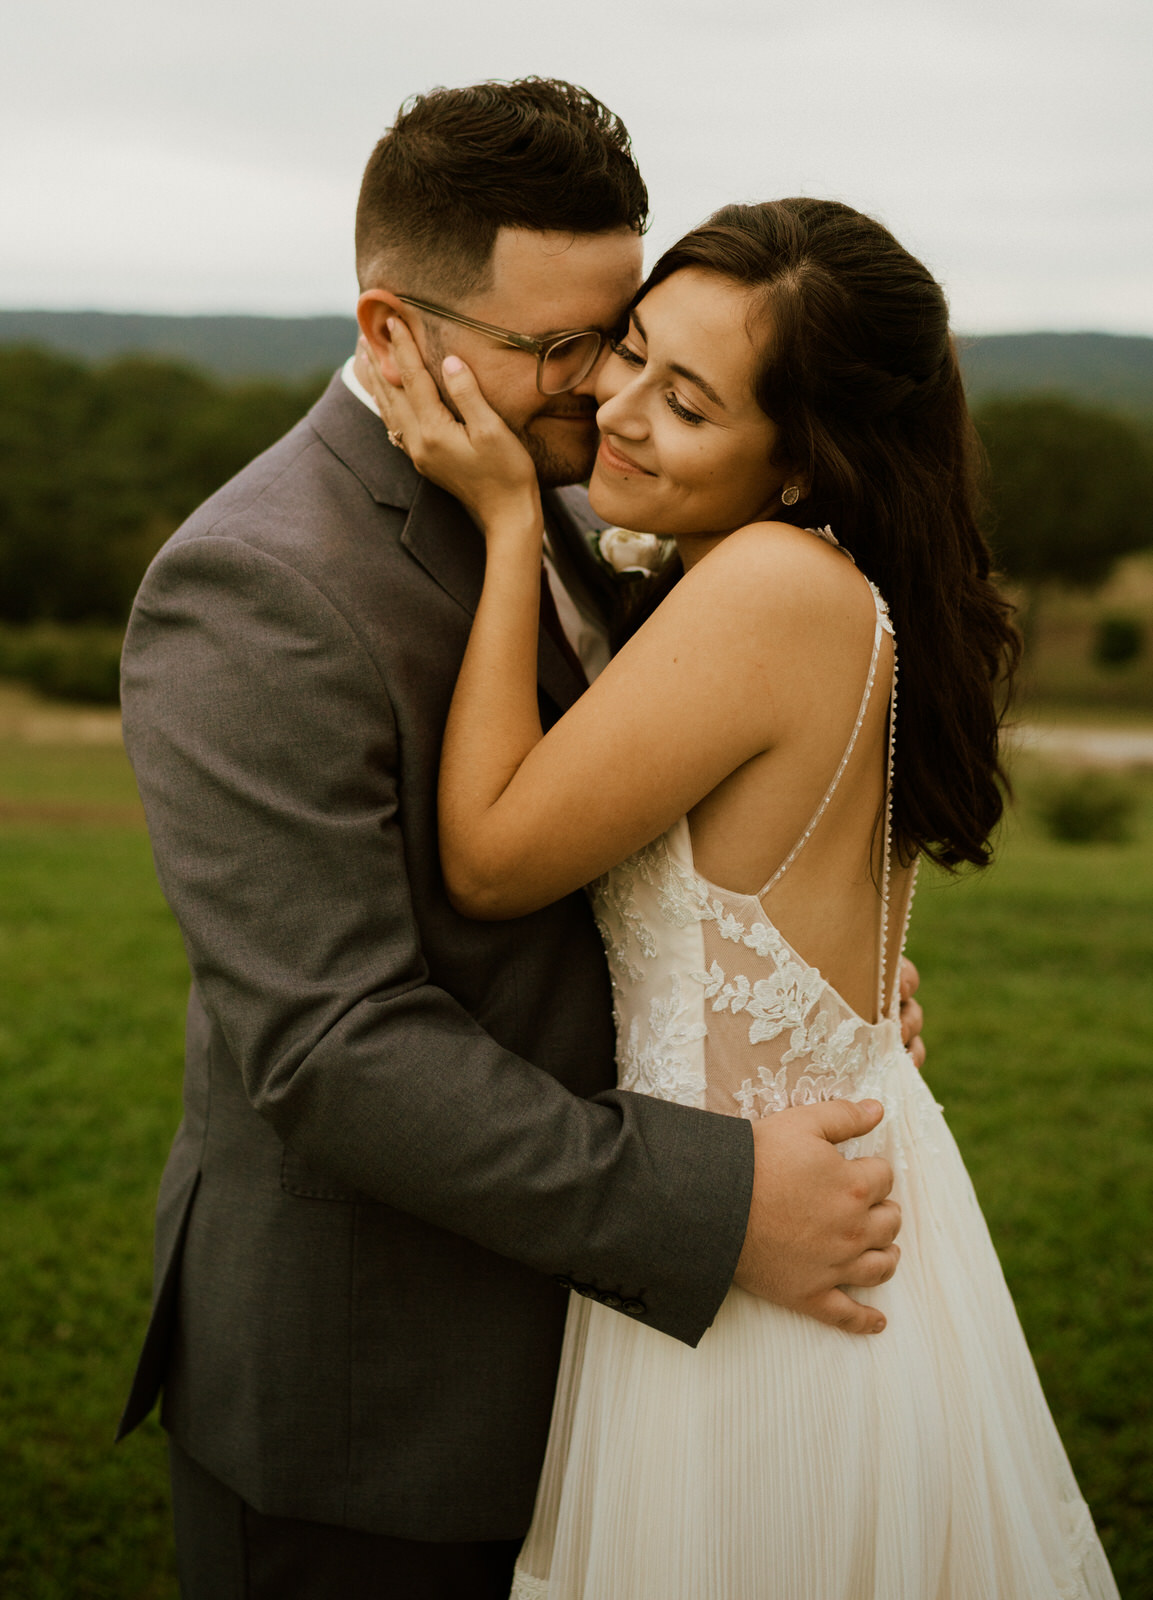 Howe Farms Chattanooga Tennessee Wedding- Michelle Gonzalez Photography- Kaylee and Jesse Cline-1013.JPG